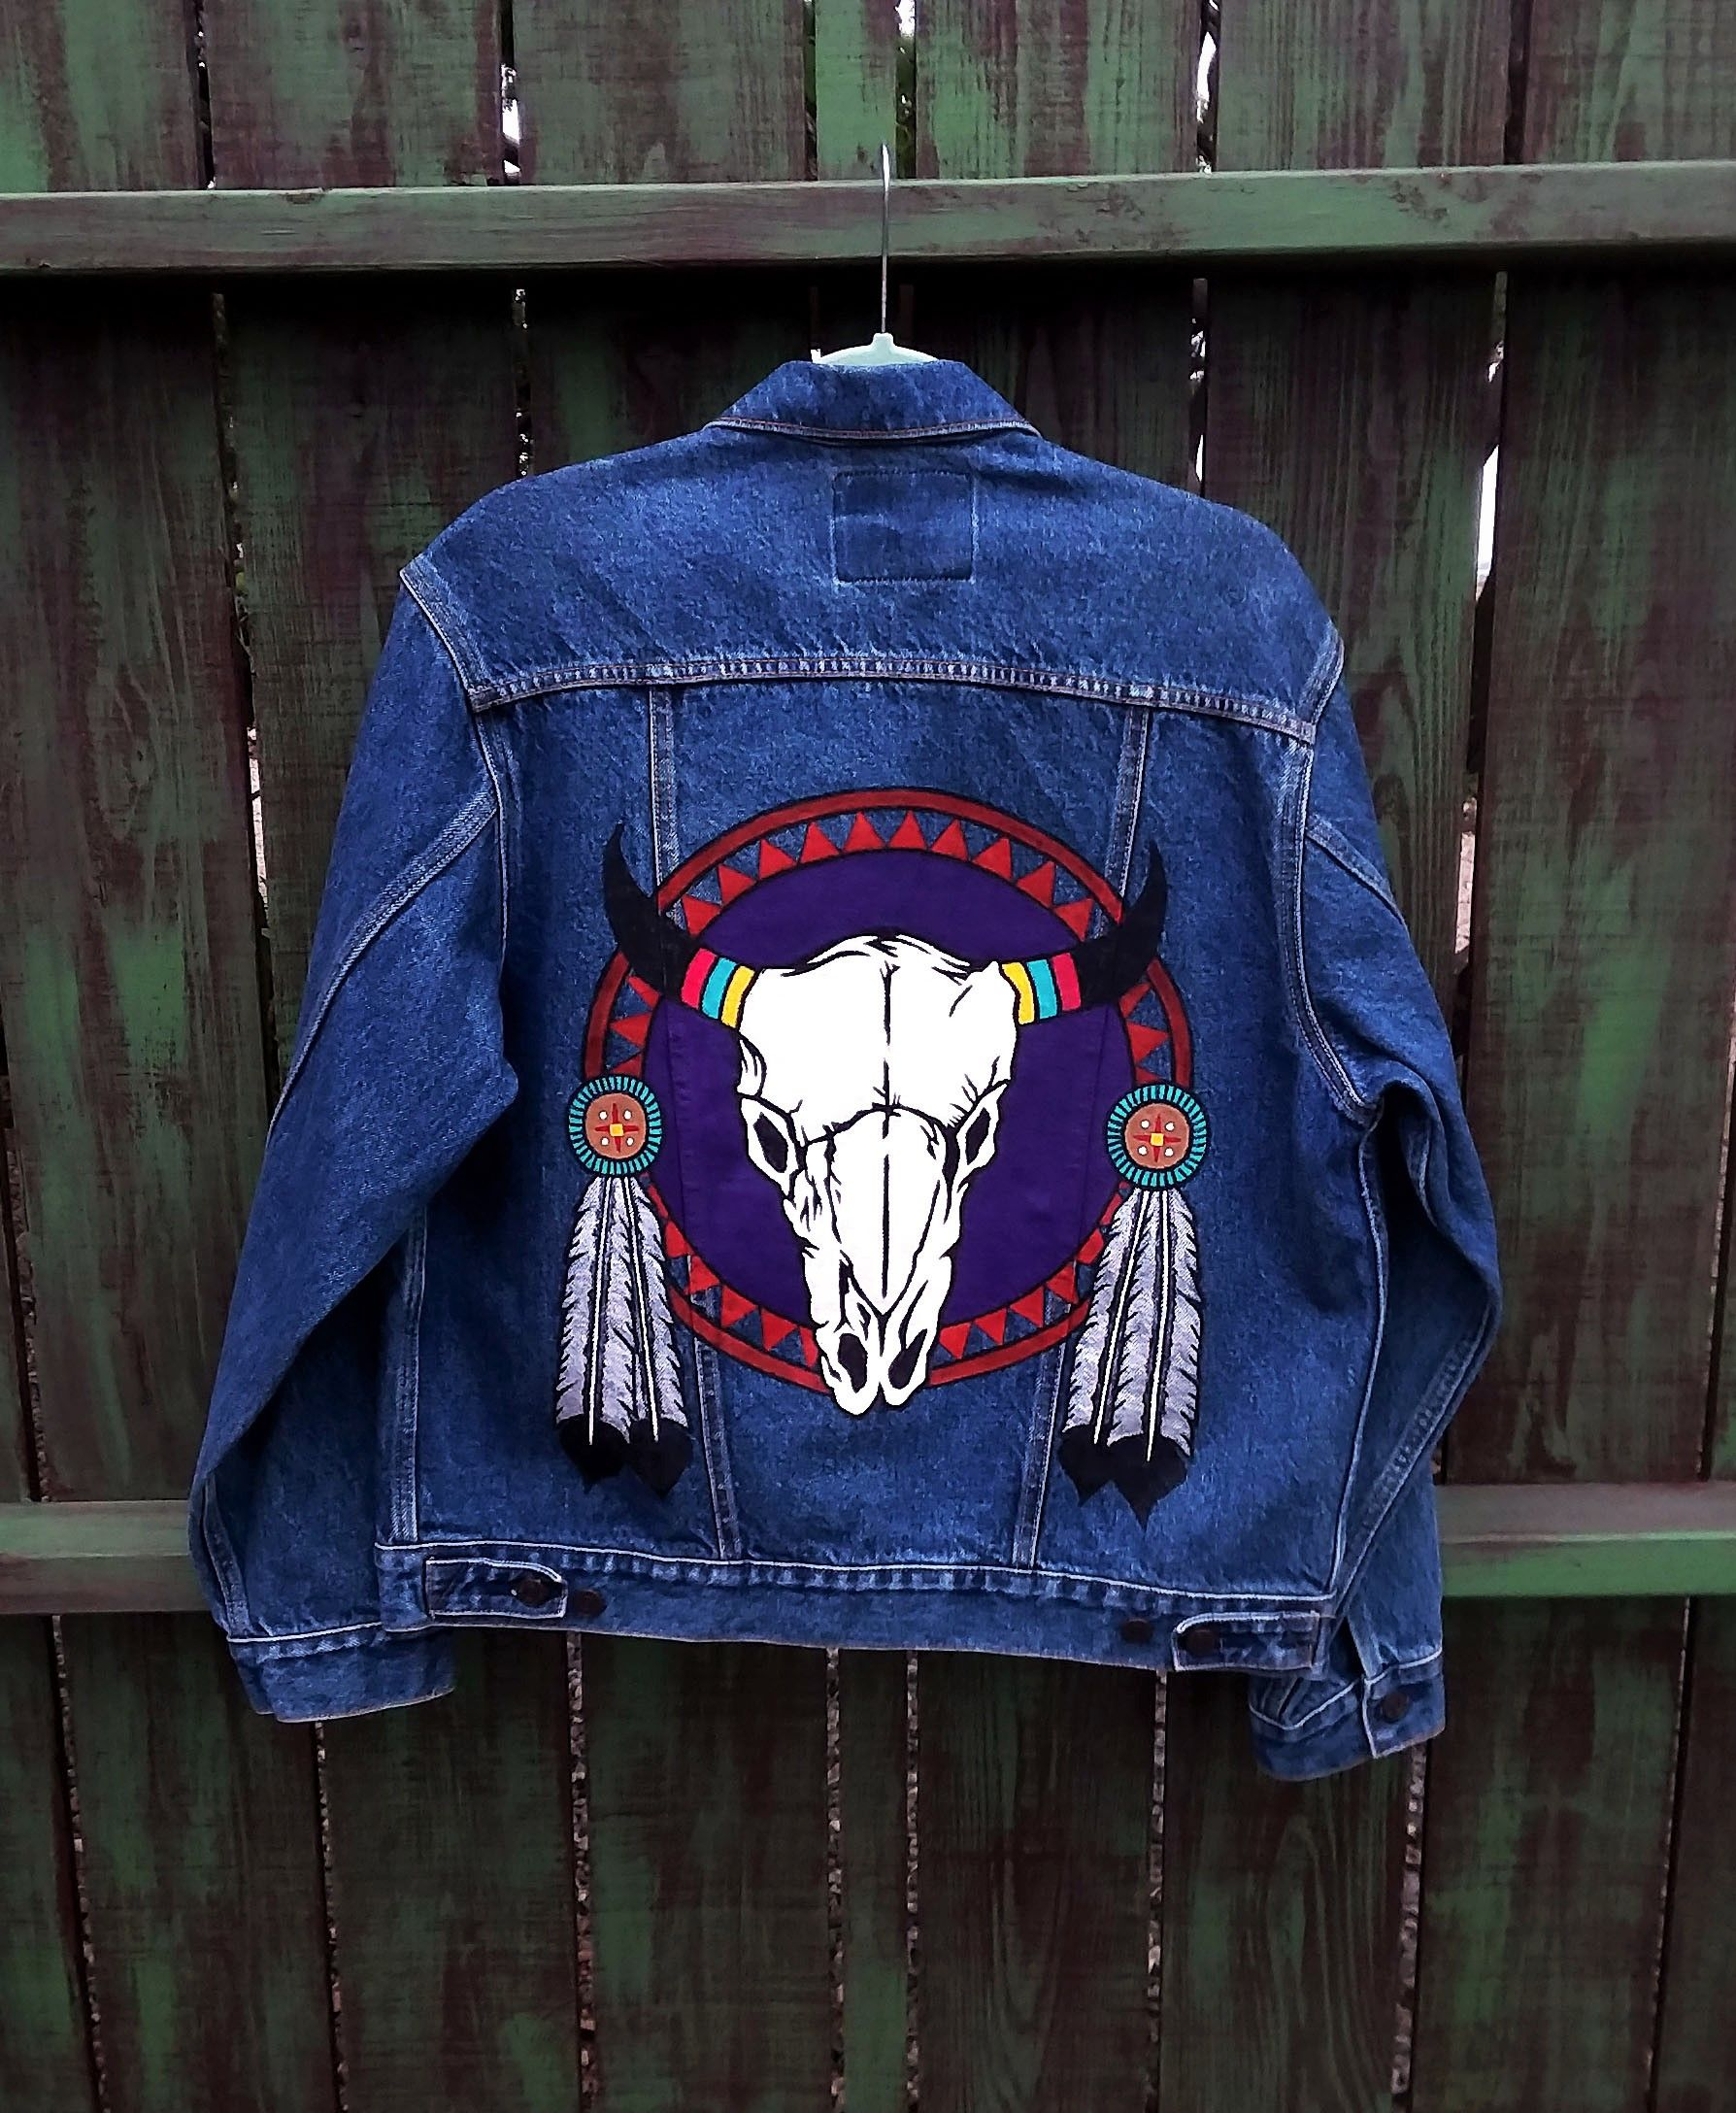 Hand Painted Southwest Cow Skull On Up Cycled Denim Levi S Jean Jacket By Bleudoor On Instagram Jackets Painted Jeans Diy Denim Jacket [ 2176 x 1788 Pixel ]